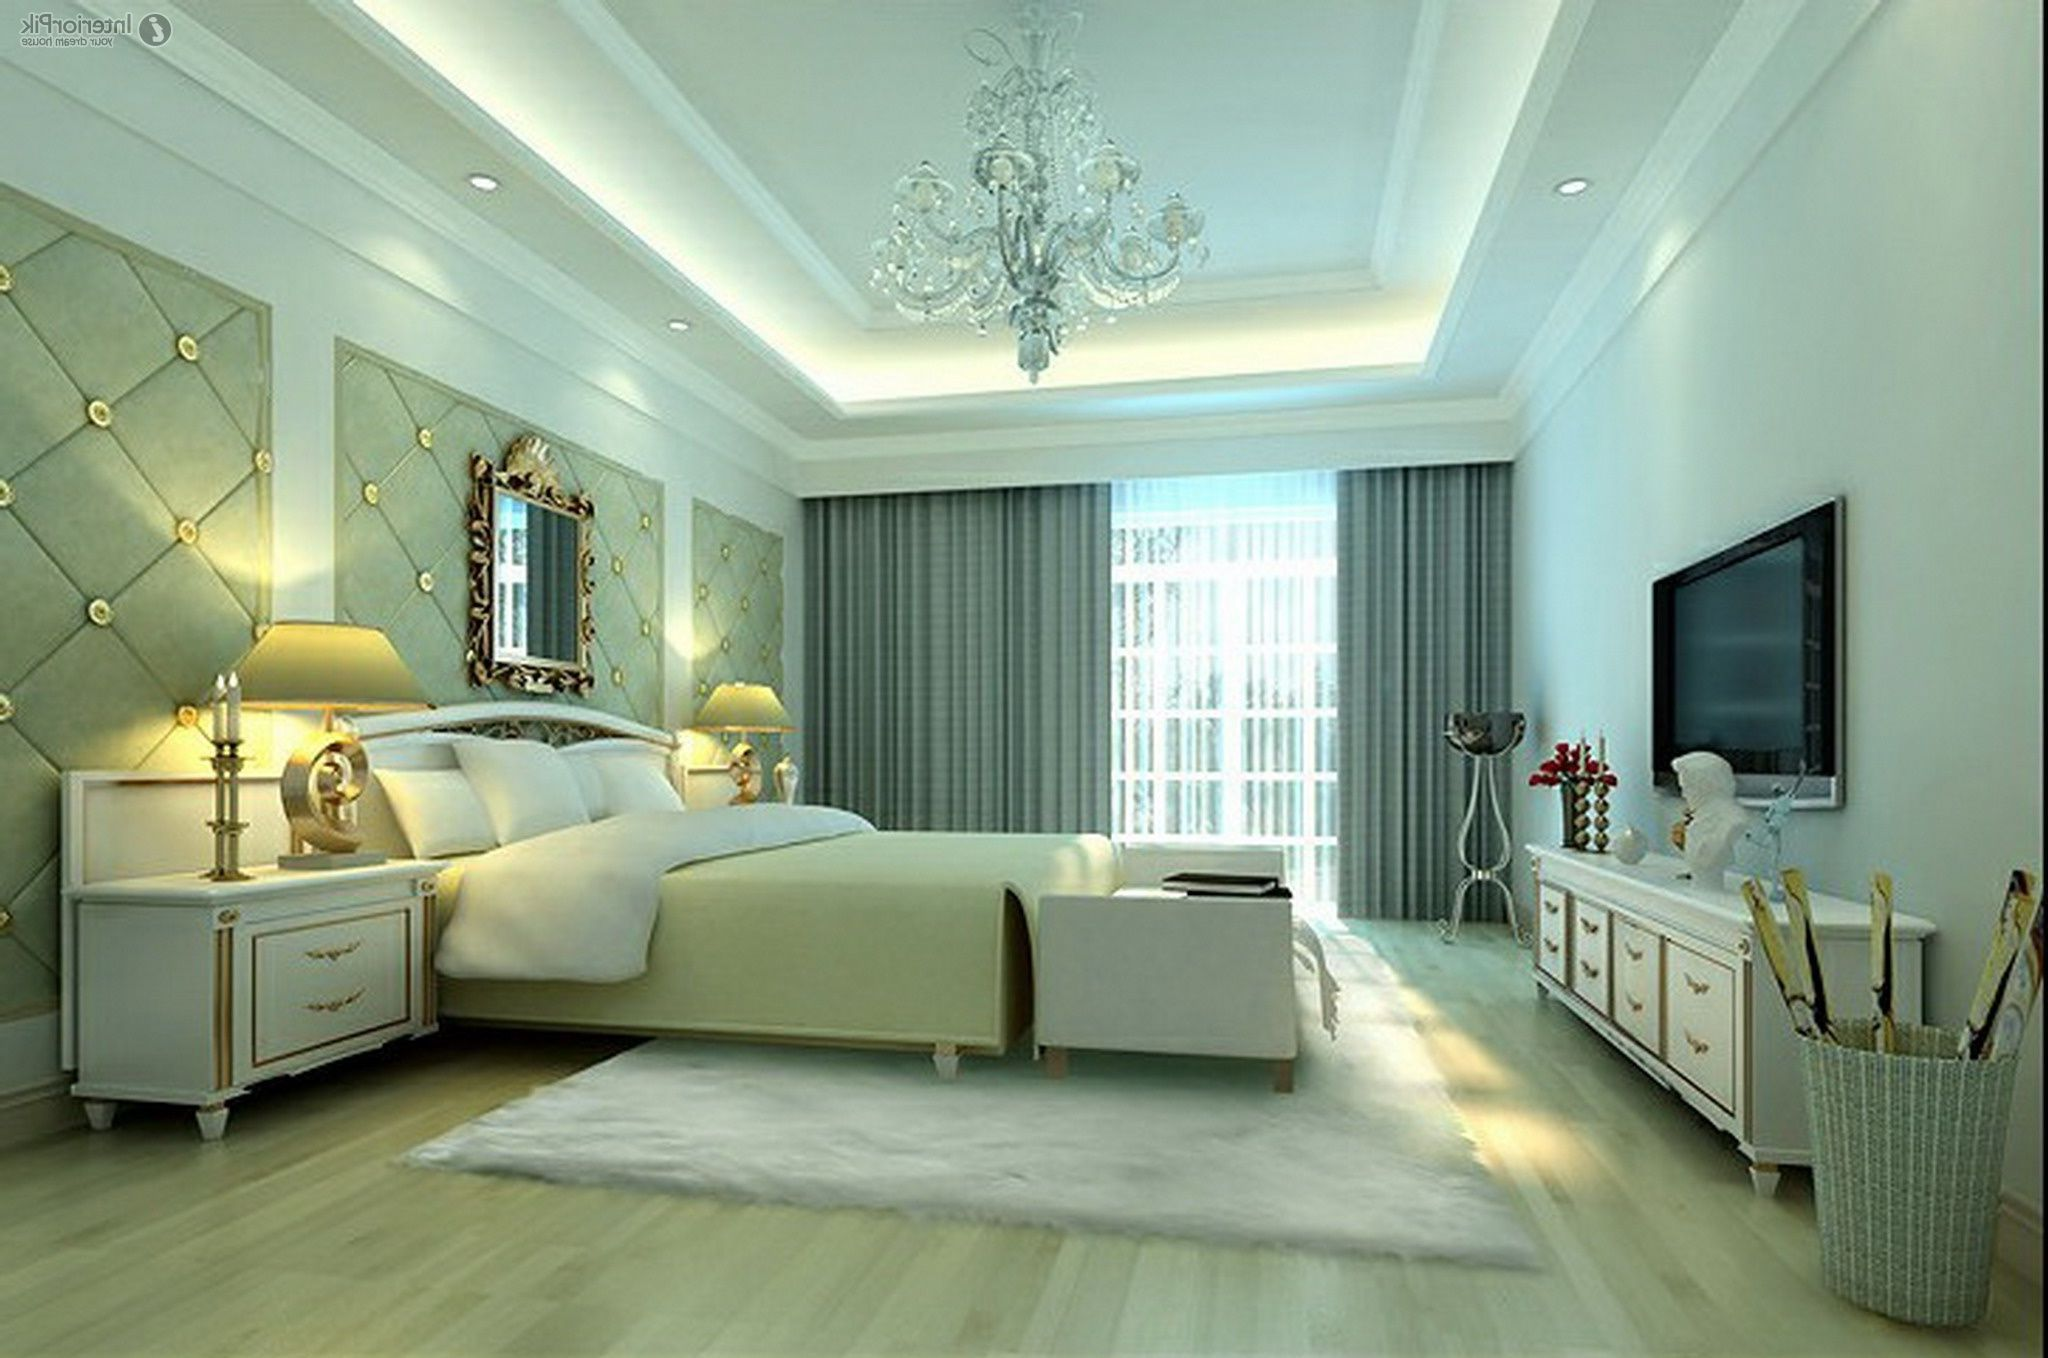 Bedroom Inspiring Ceiling Lighting Ideas With Extravagant Look Beautiful Light For